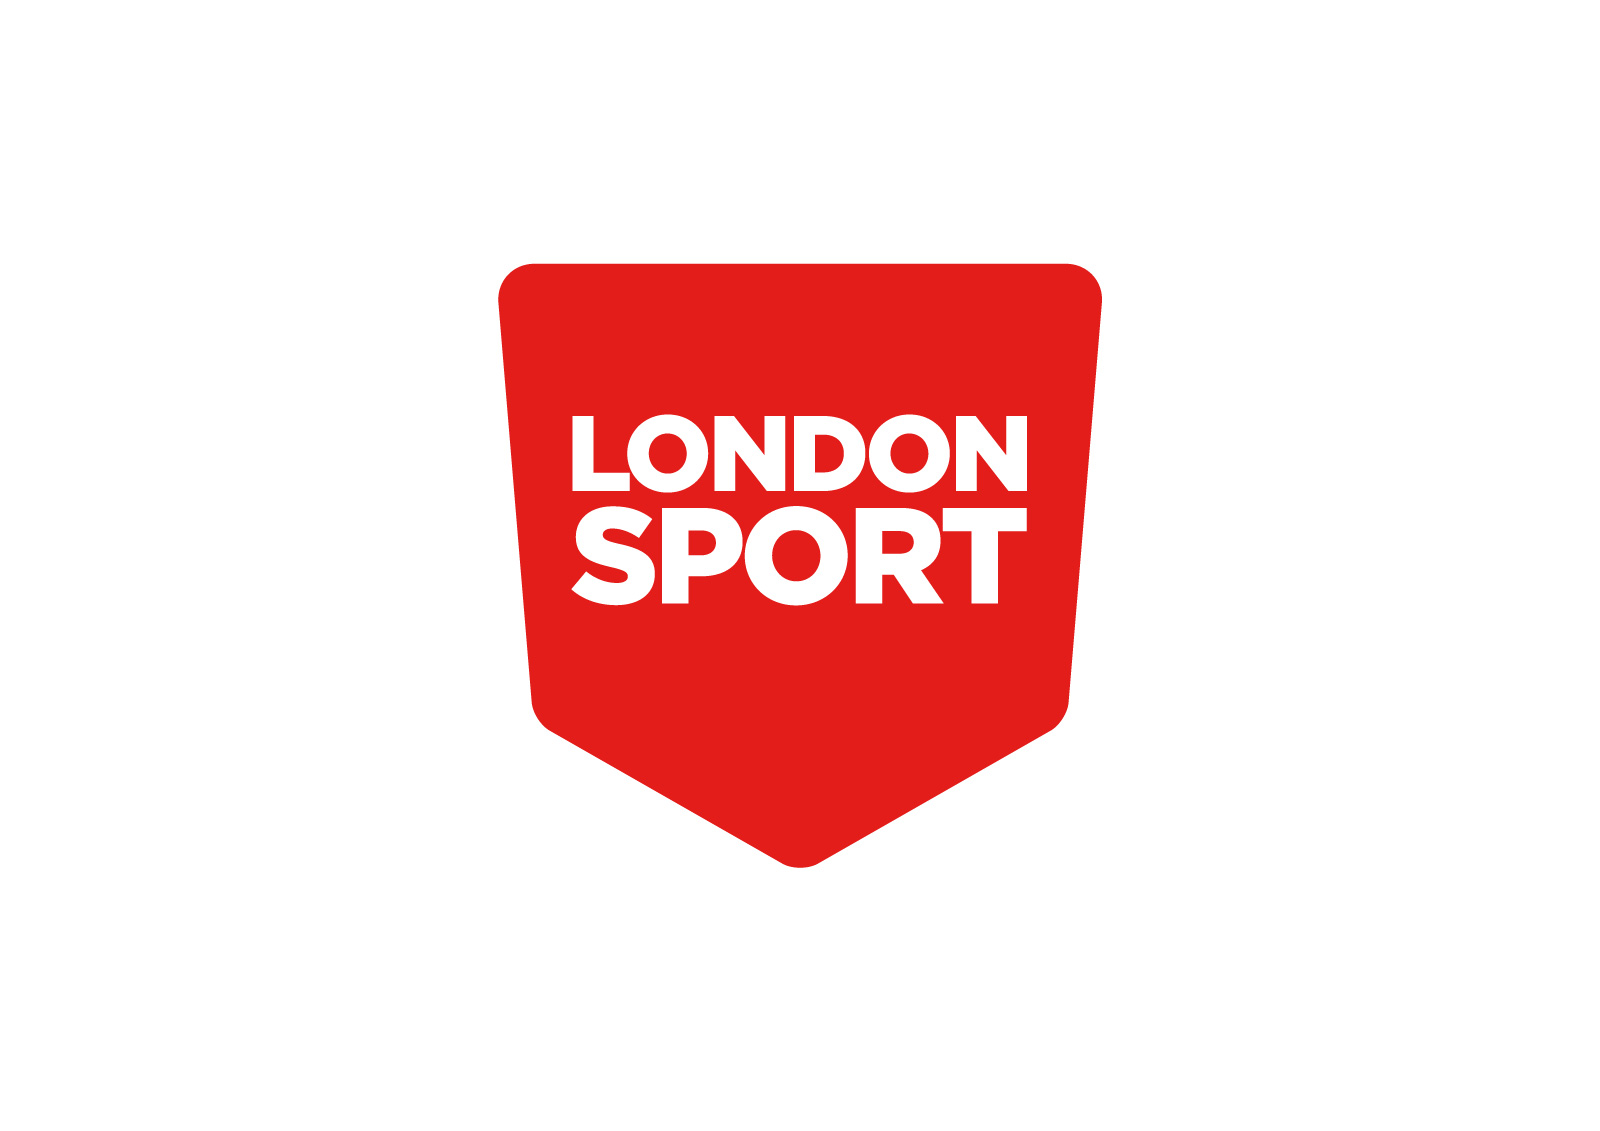 London Sport Visual Identity Design